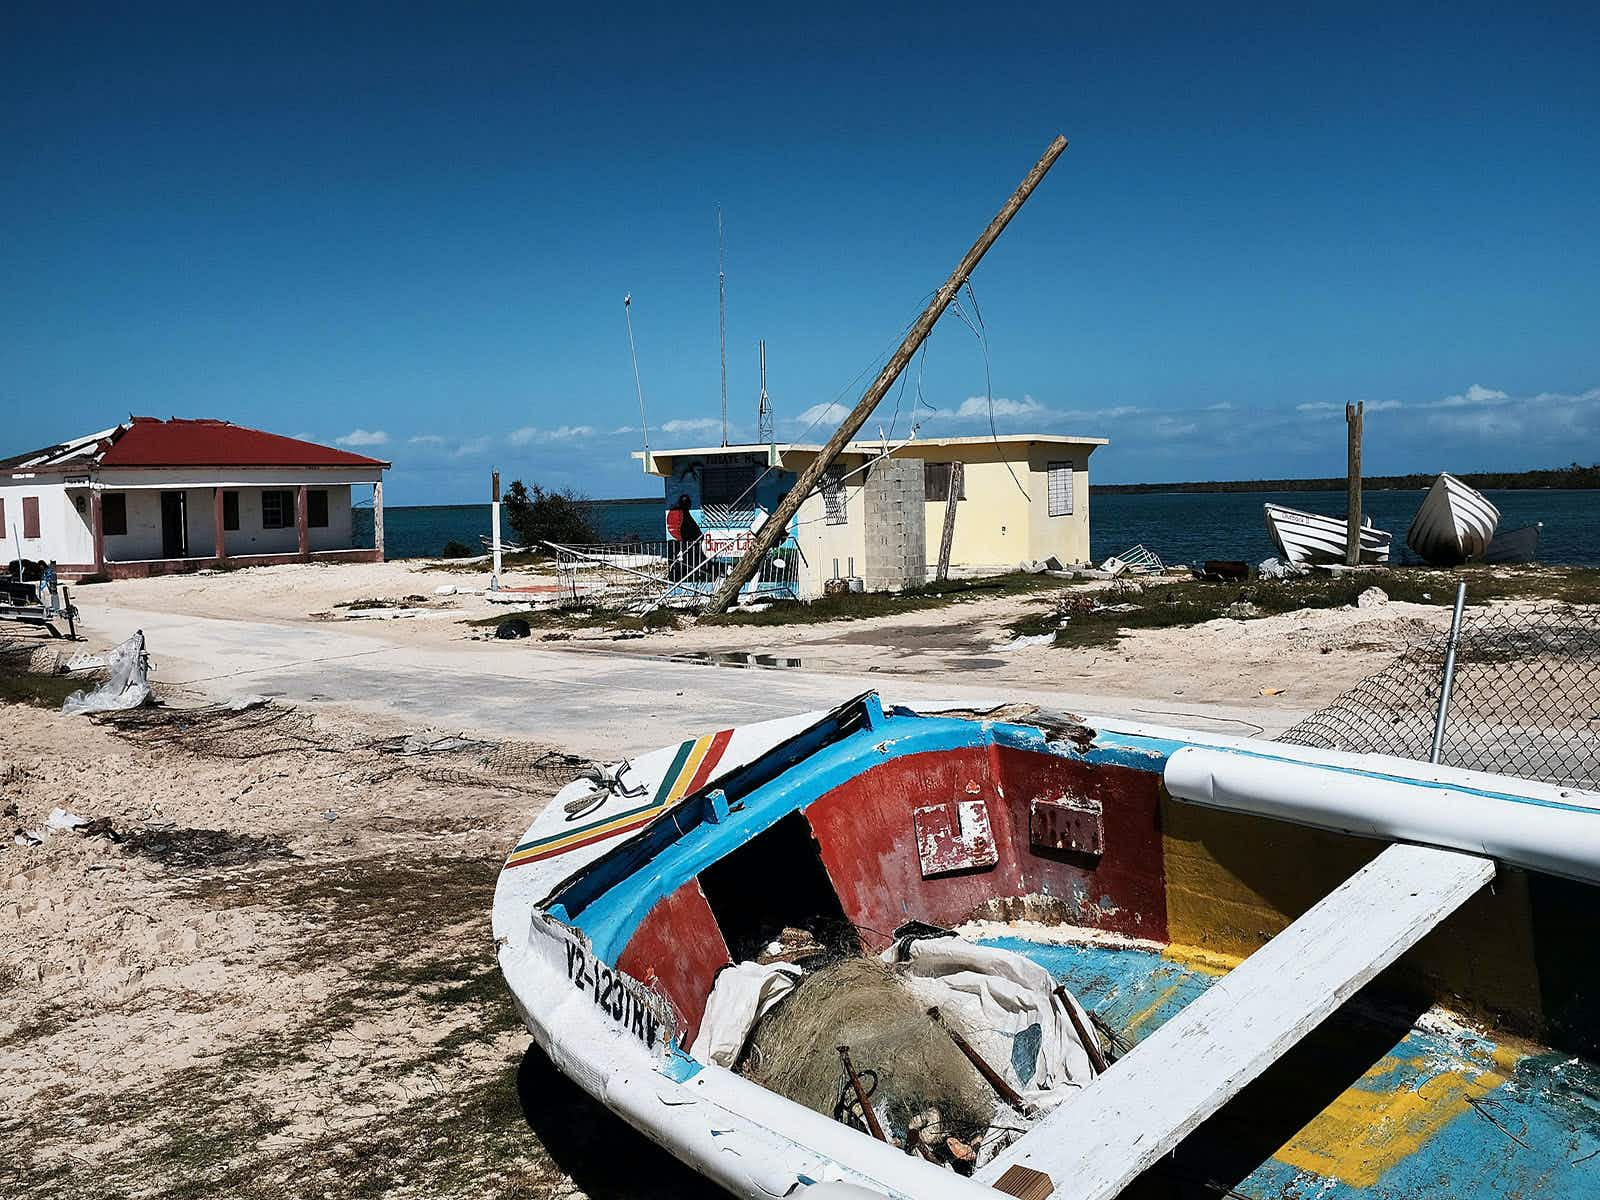 Debris from damaged homes lines a street on the nearly destroyed island of Barbuda on December 8, 2017 in Cordington, Barbuda Spencer Platt/Getty Images